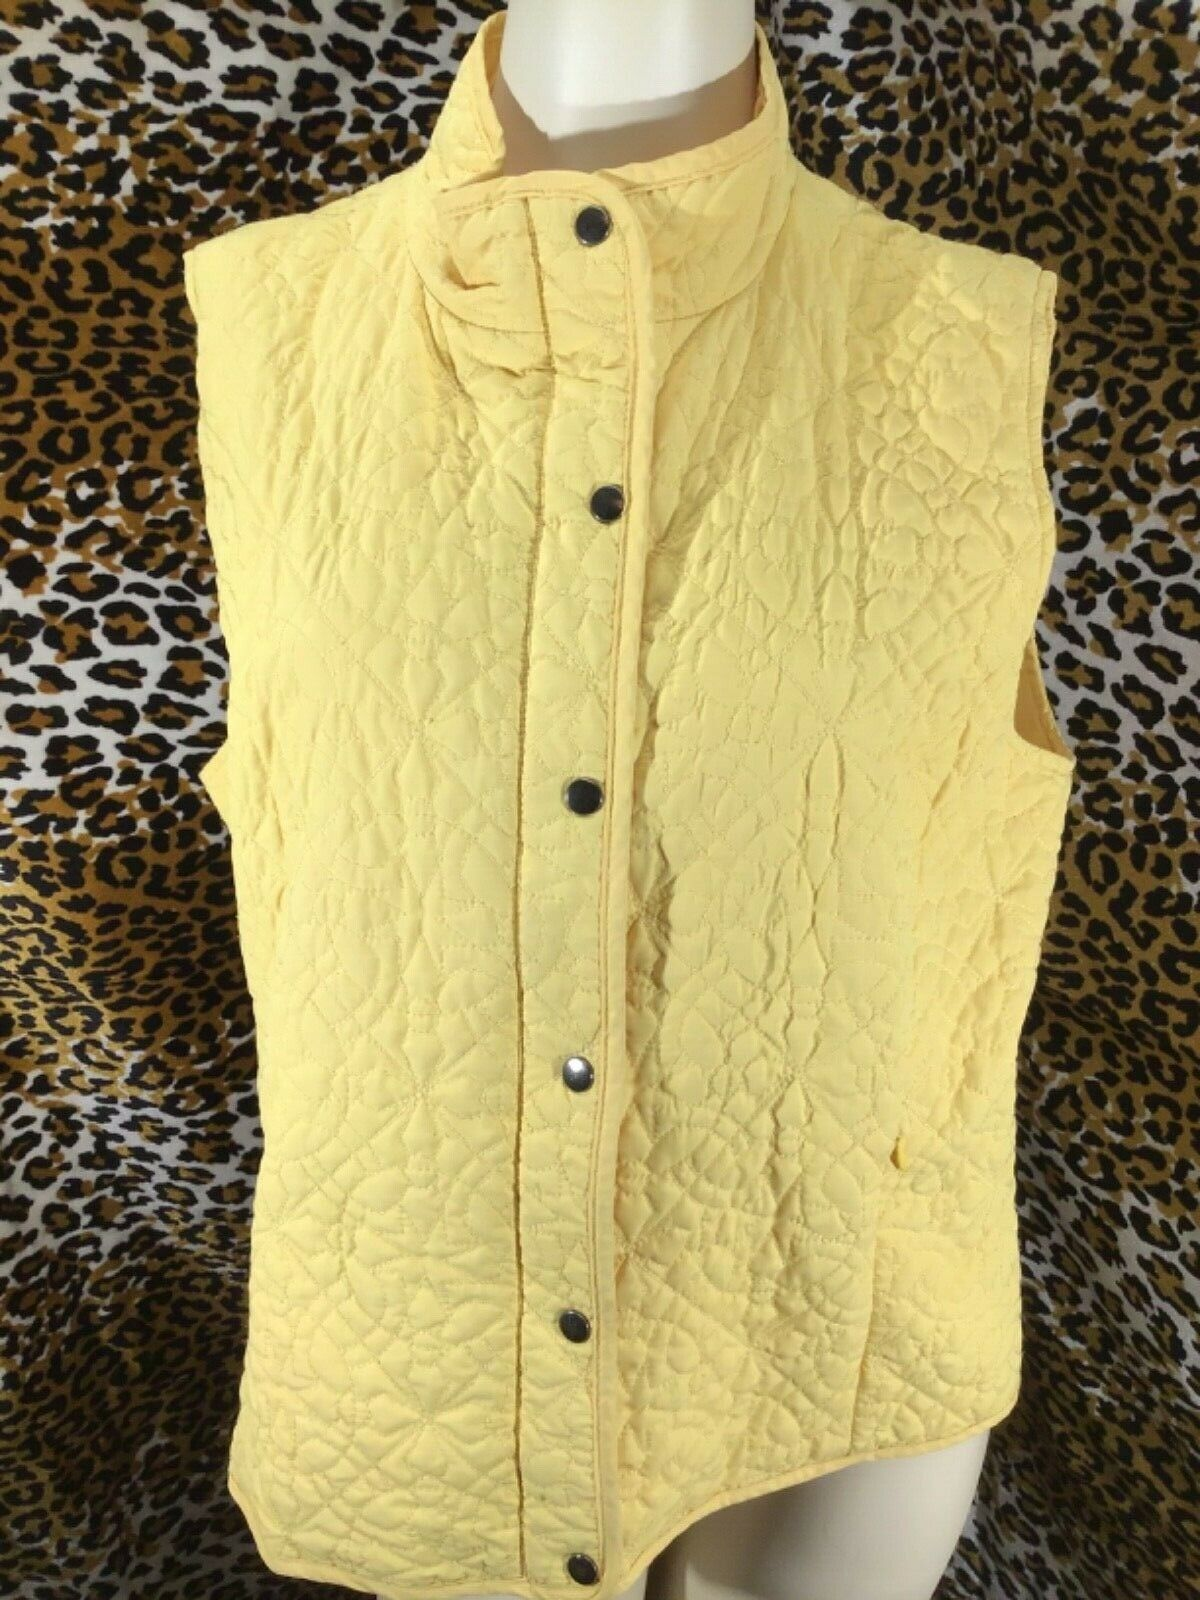 💥 Zenergy by Chico's Quilted Vest Women's Size 2 Yellow Zip & Snap Up 💥